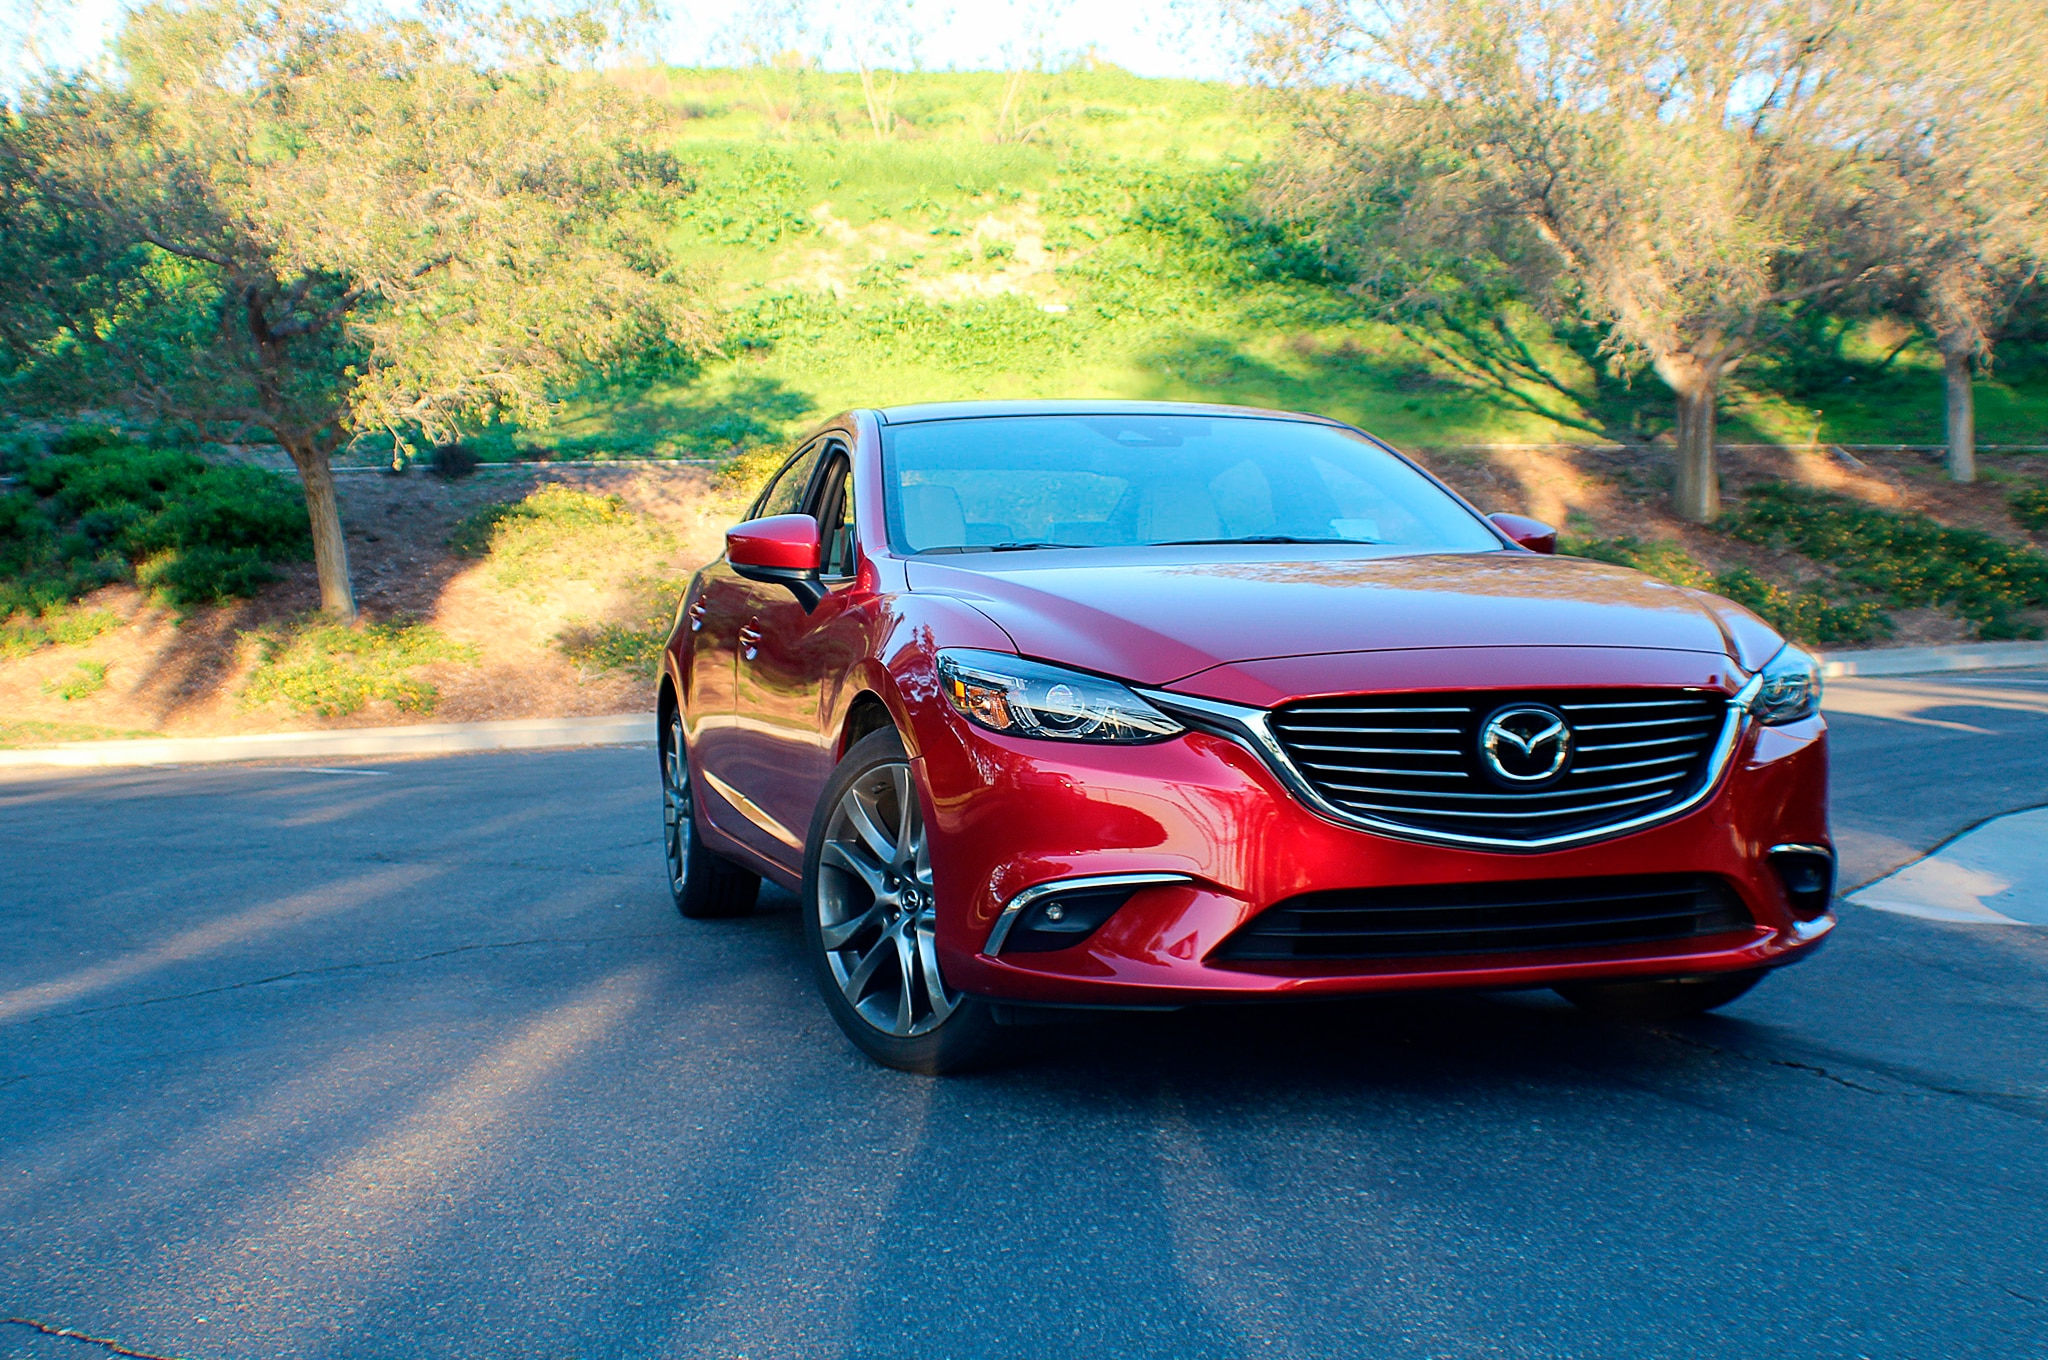 2017 Mazda6 Grand Touring First Drive Review   Automobile